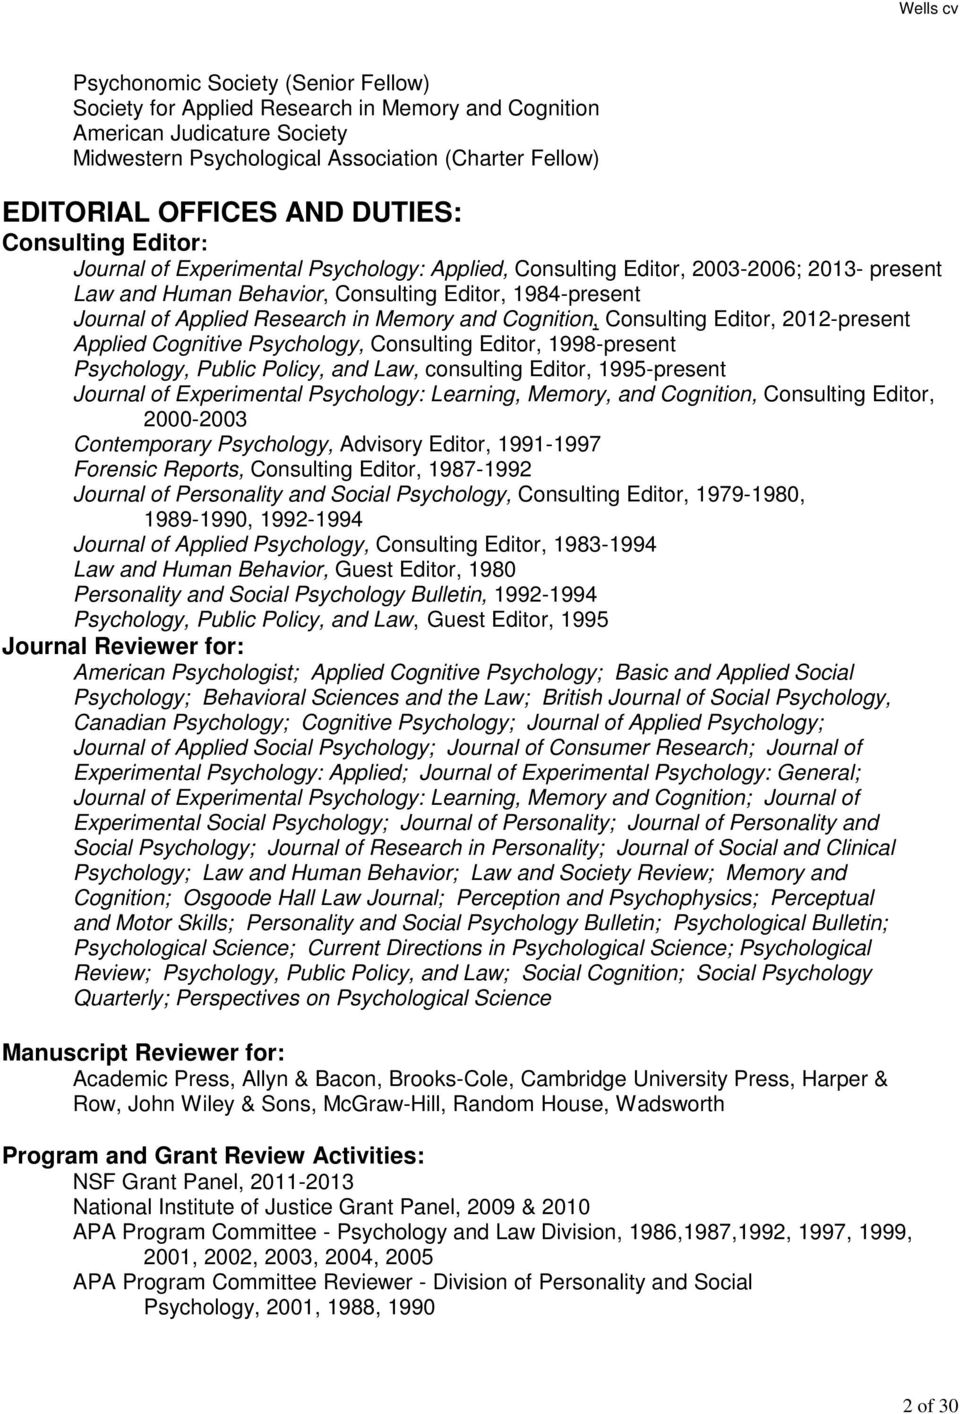 Research in Memory and Cognition, Consulting Editor, 2012-present Applied Cognitive Psychology, Consulting Editor, 1998-present Psychology, Public Policy, and Law, consulting Editor, 1995-present